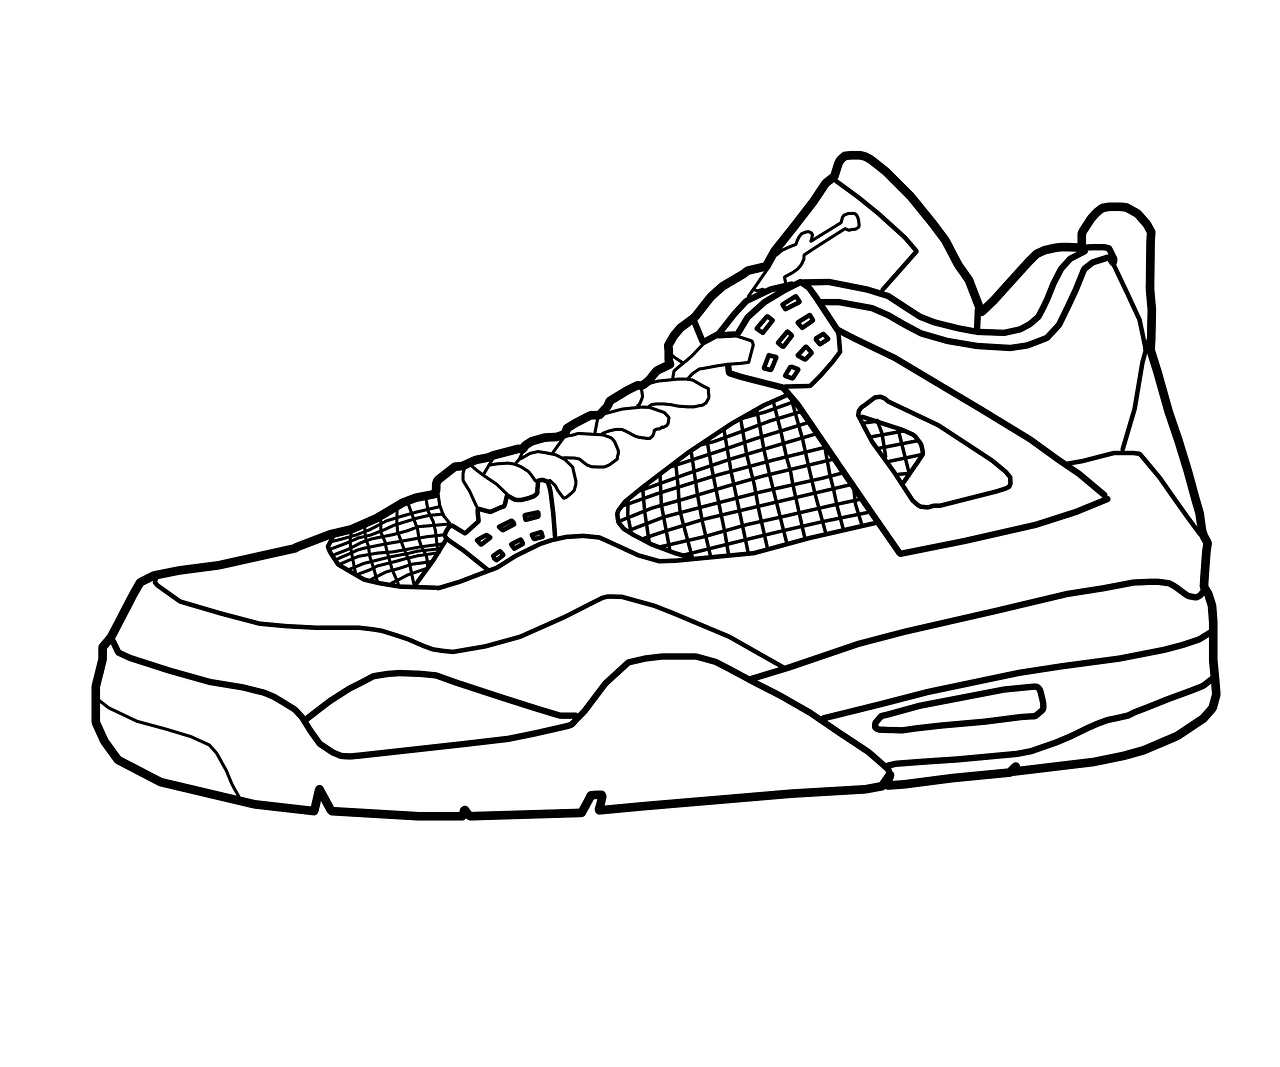 How to Draw an Air Jordan Shoe - YouTube | vıdeo | Pinterest | Air jordan  shoes and Drawings